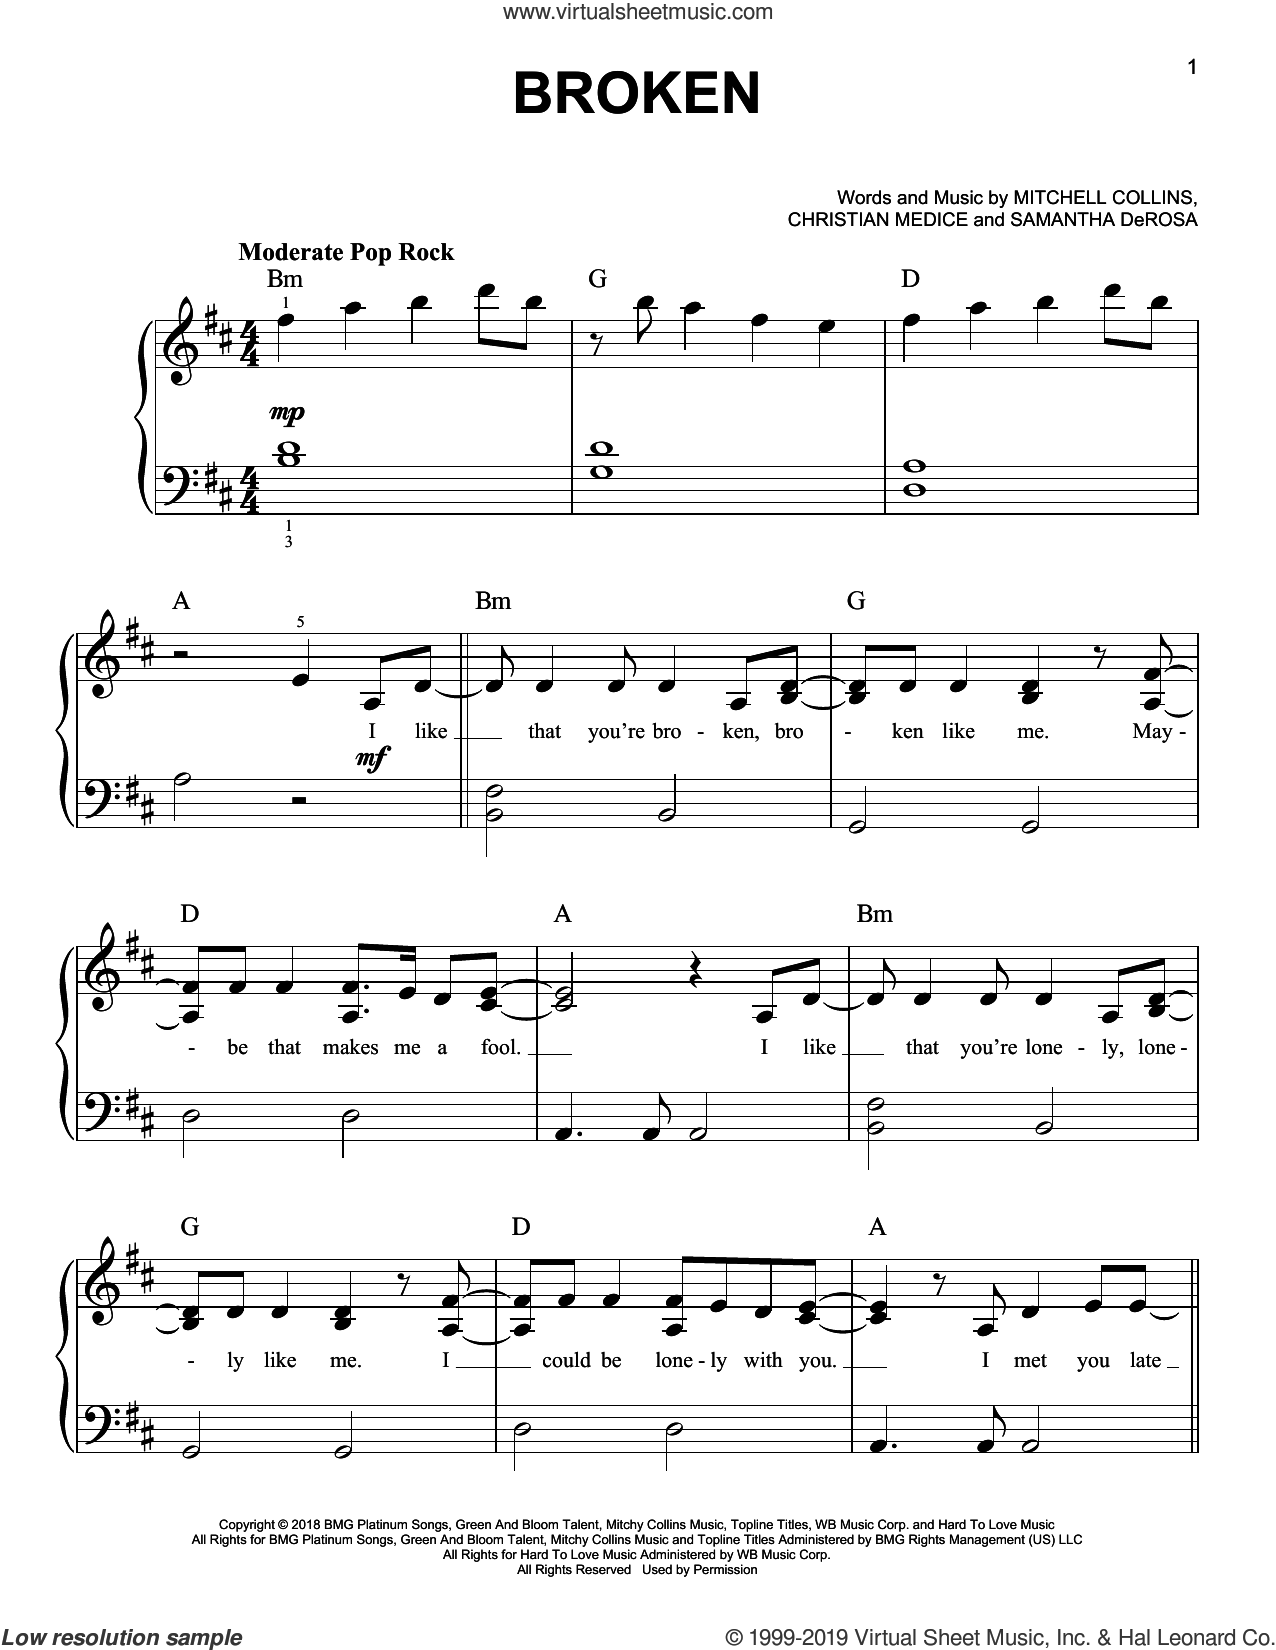 Broken sheet music for piano solo by lovelytheband, Christian Medice, Mitchell Collins and Samantha DeRosa, easy skill level